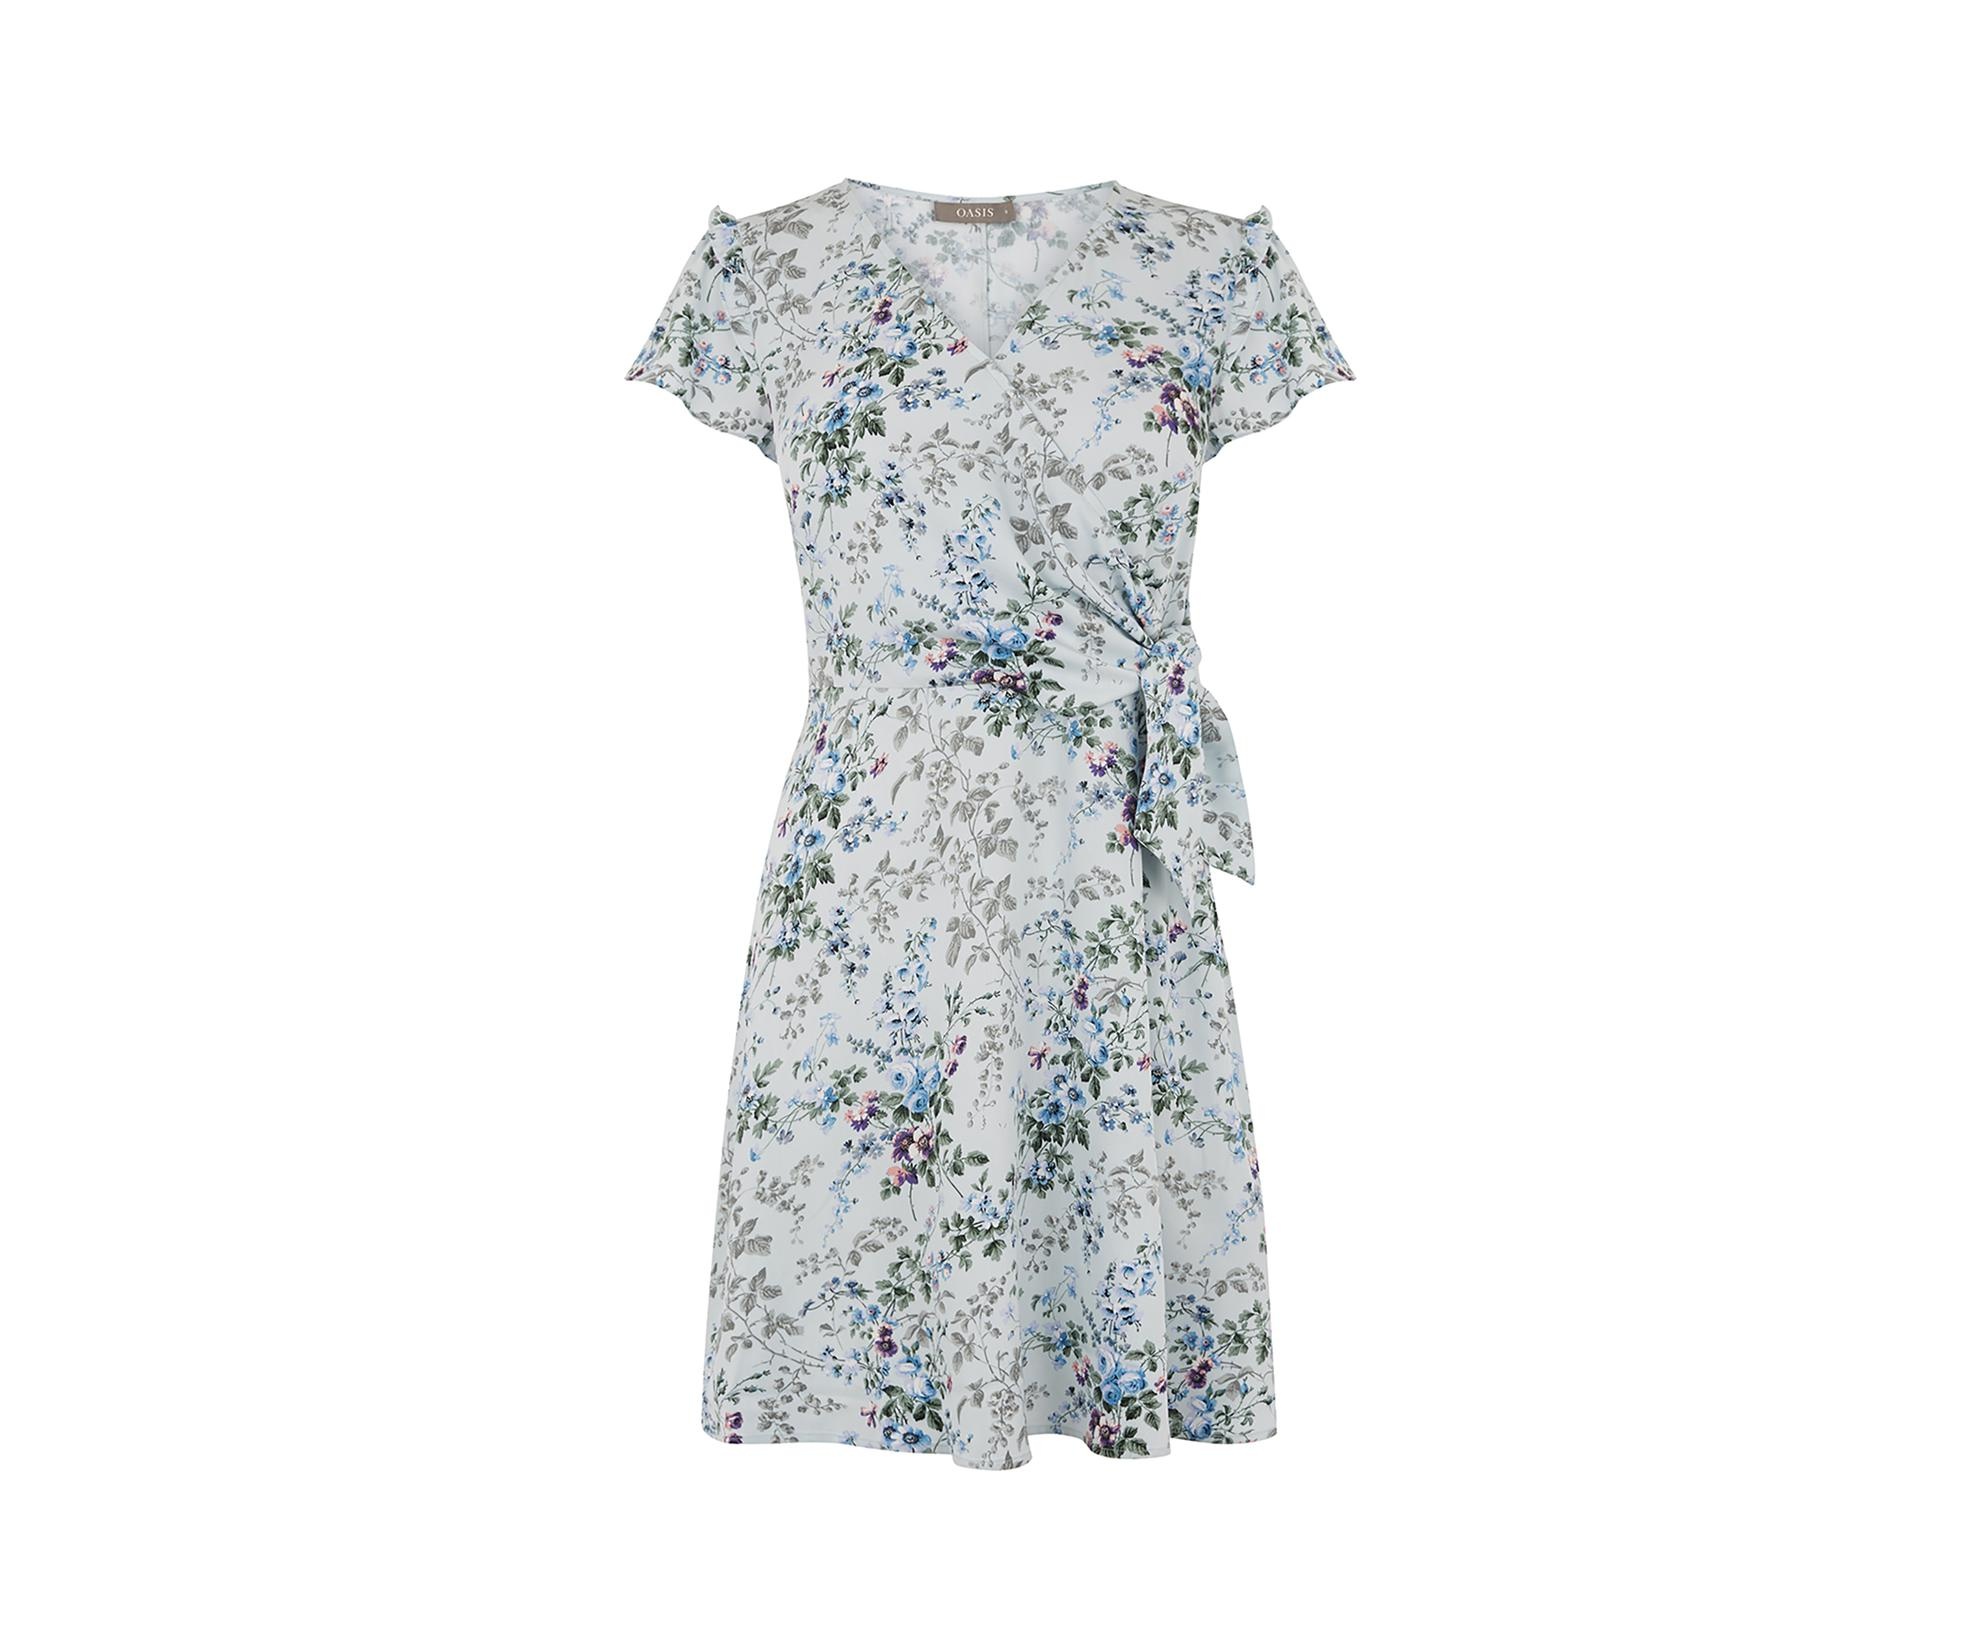 5a706a5dc211 Lyst - Oasis Provence Wrap Dress in Blue